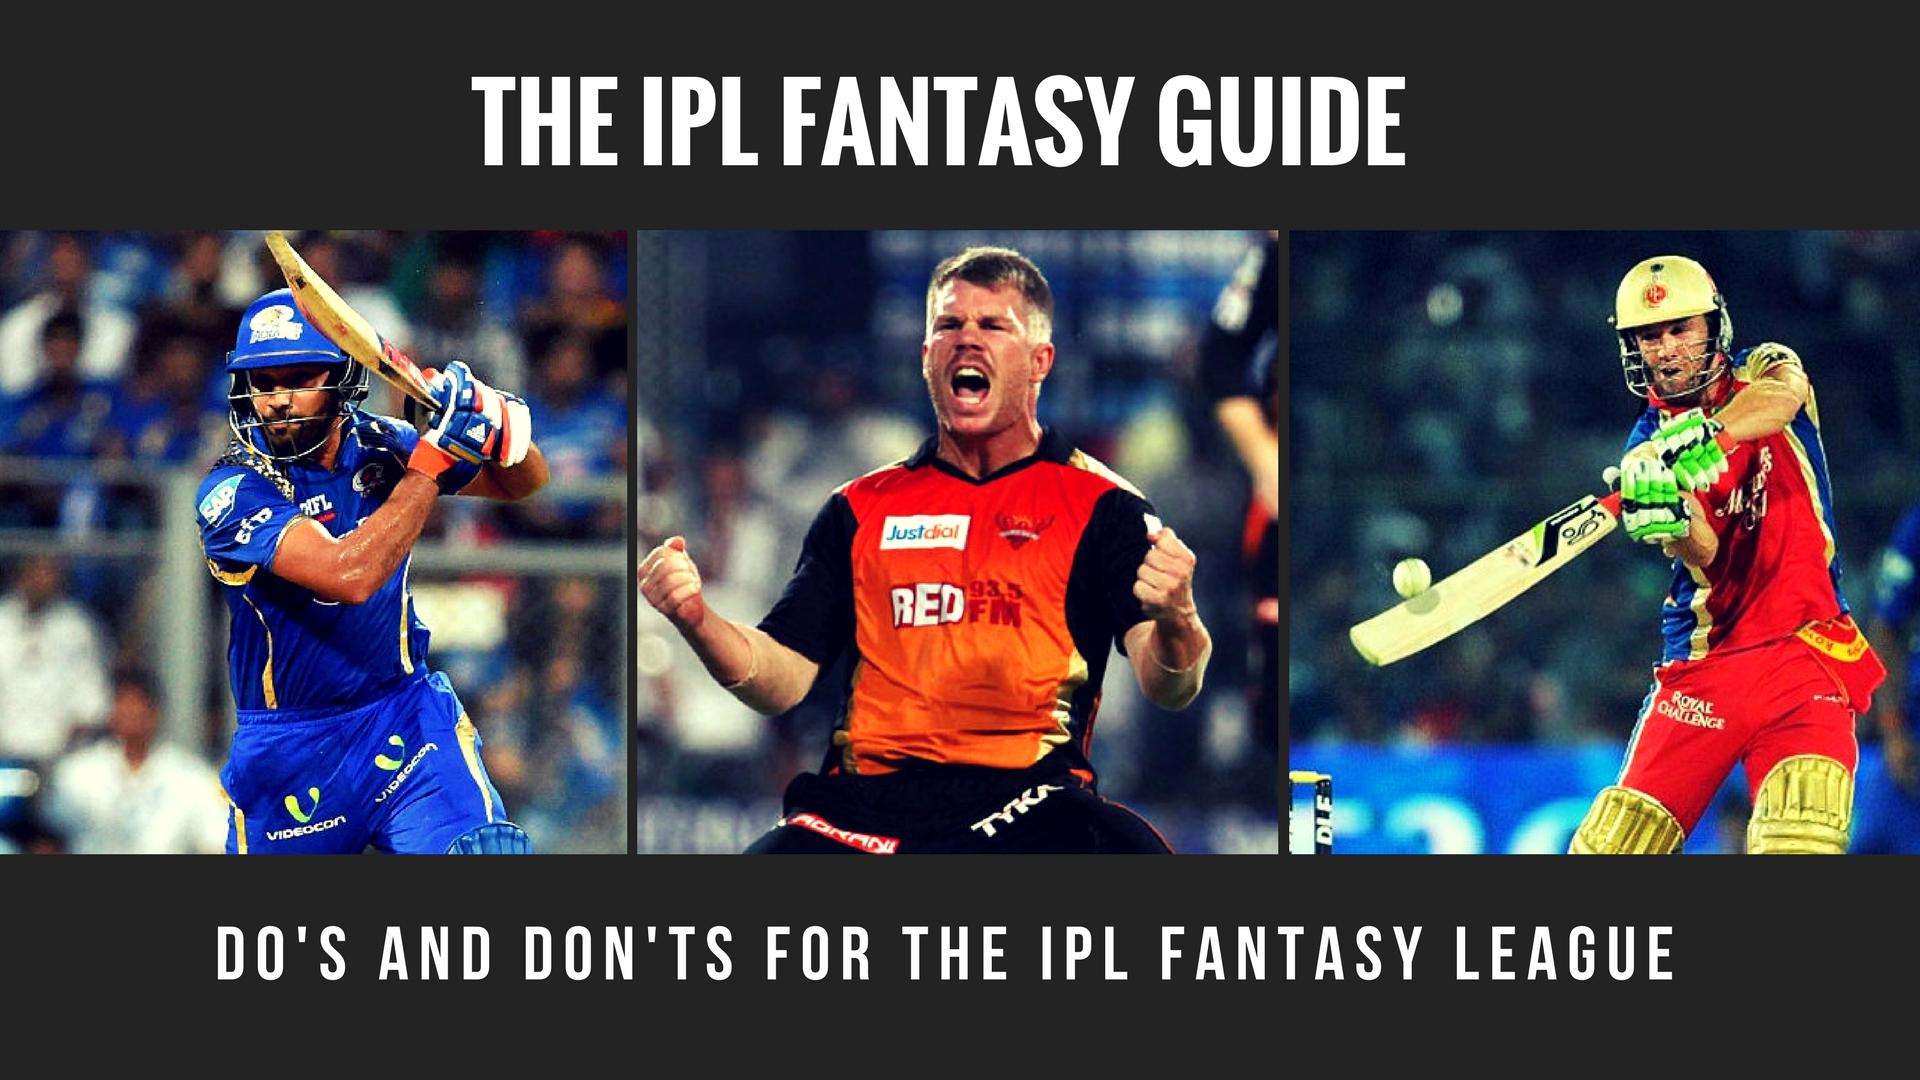 Do's and Don'ts for the IPL Fantasy League